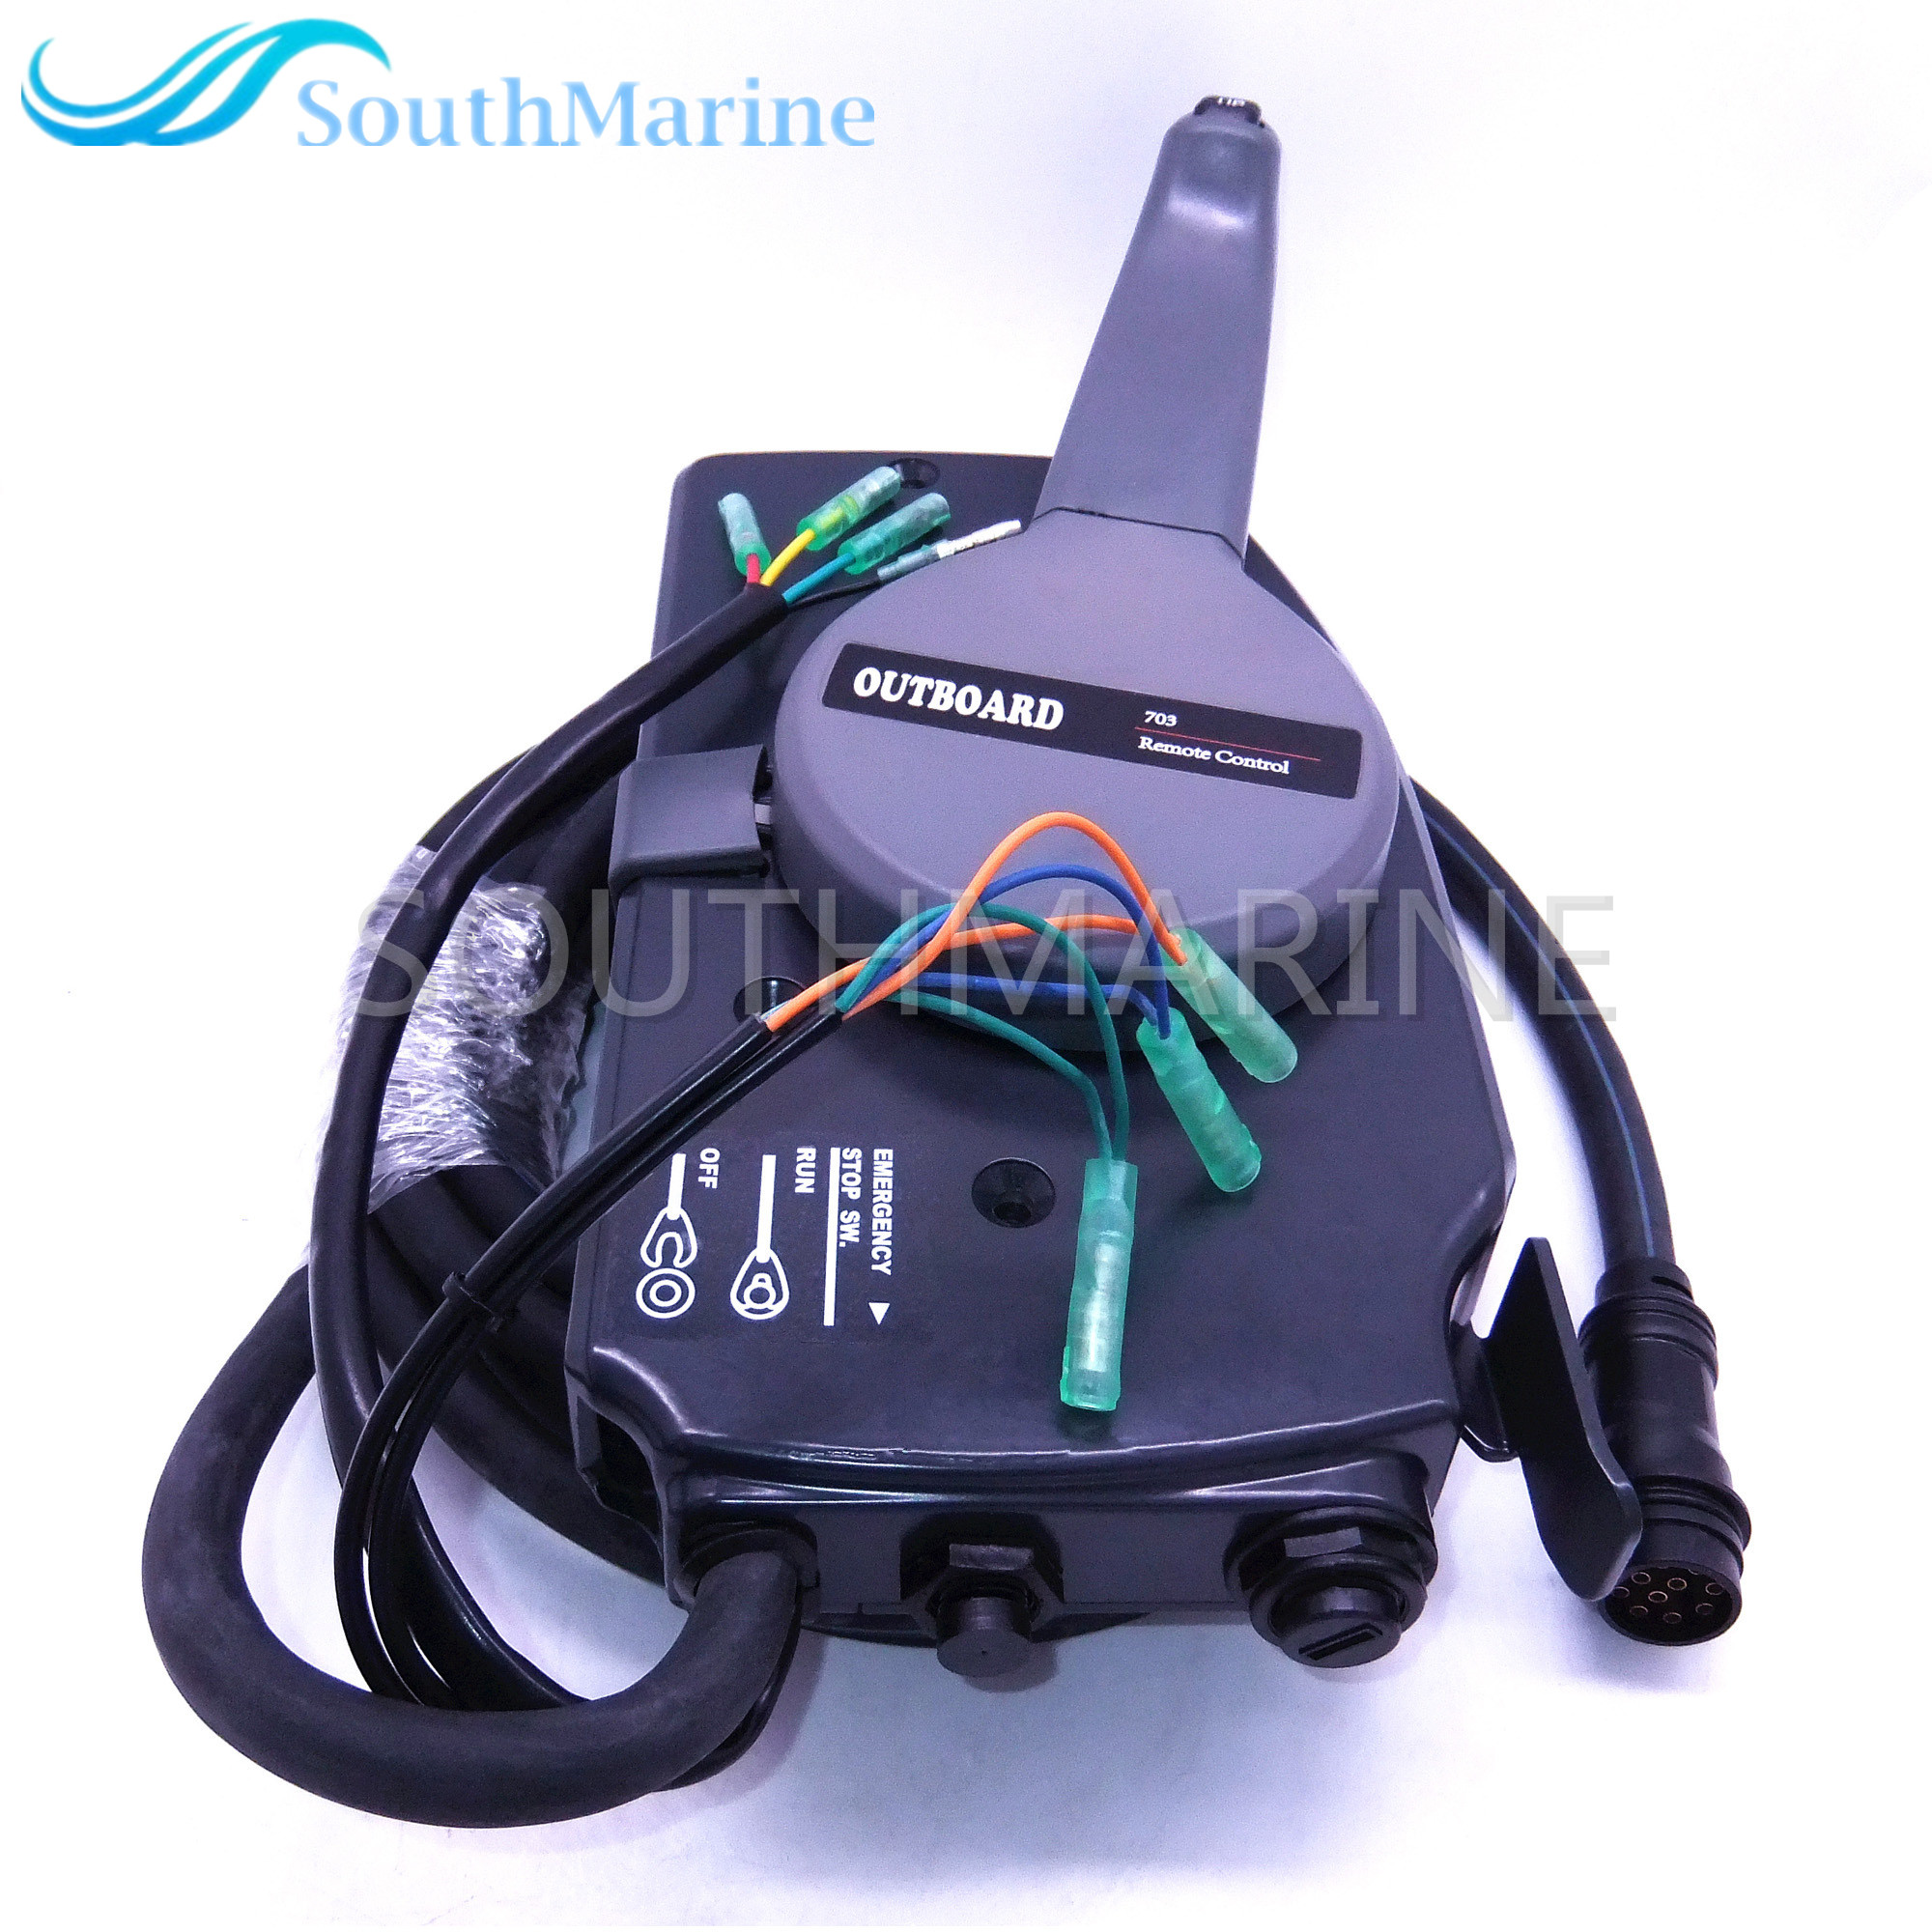 Boat Motor 703-48207-22-00 Side Mount Remote Control Throttle Shift Box For Yamaha Outboard Engine 10 Pins, Right Hand New Type